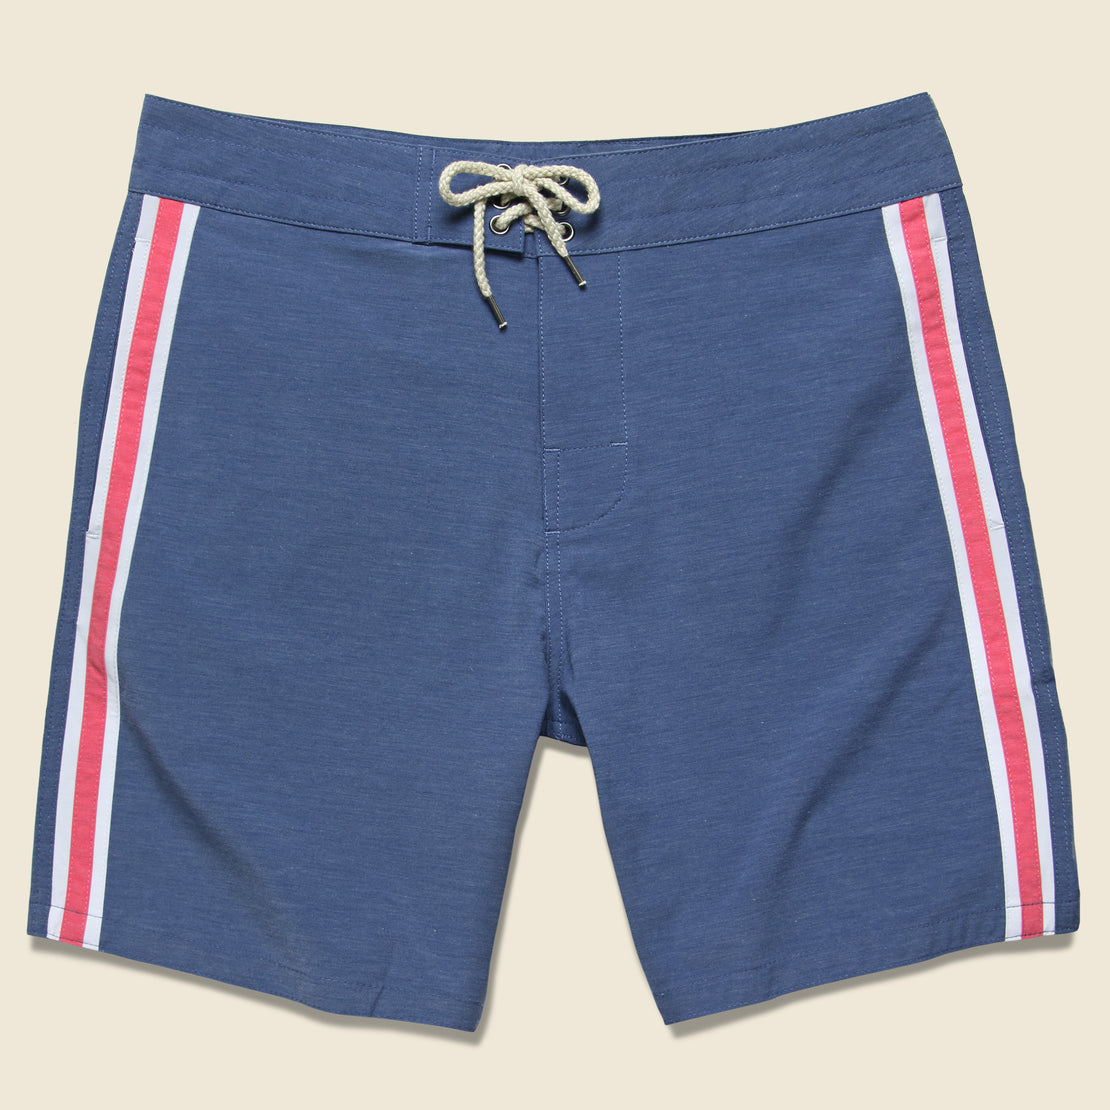 Faherty Retro Surf Stripe Boardshort - Blue/Red/White